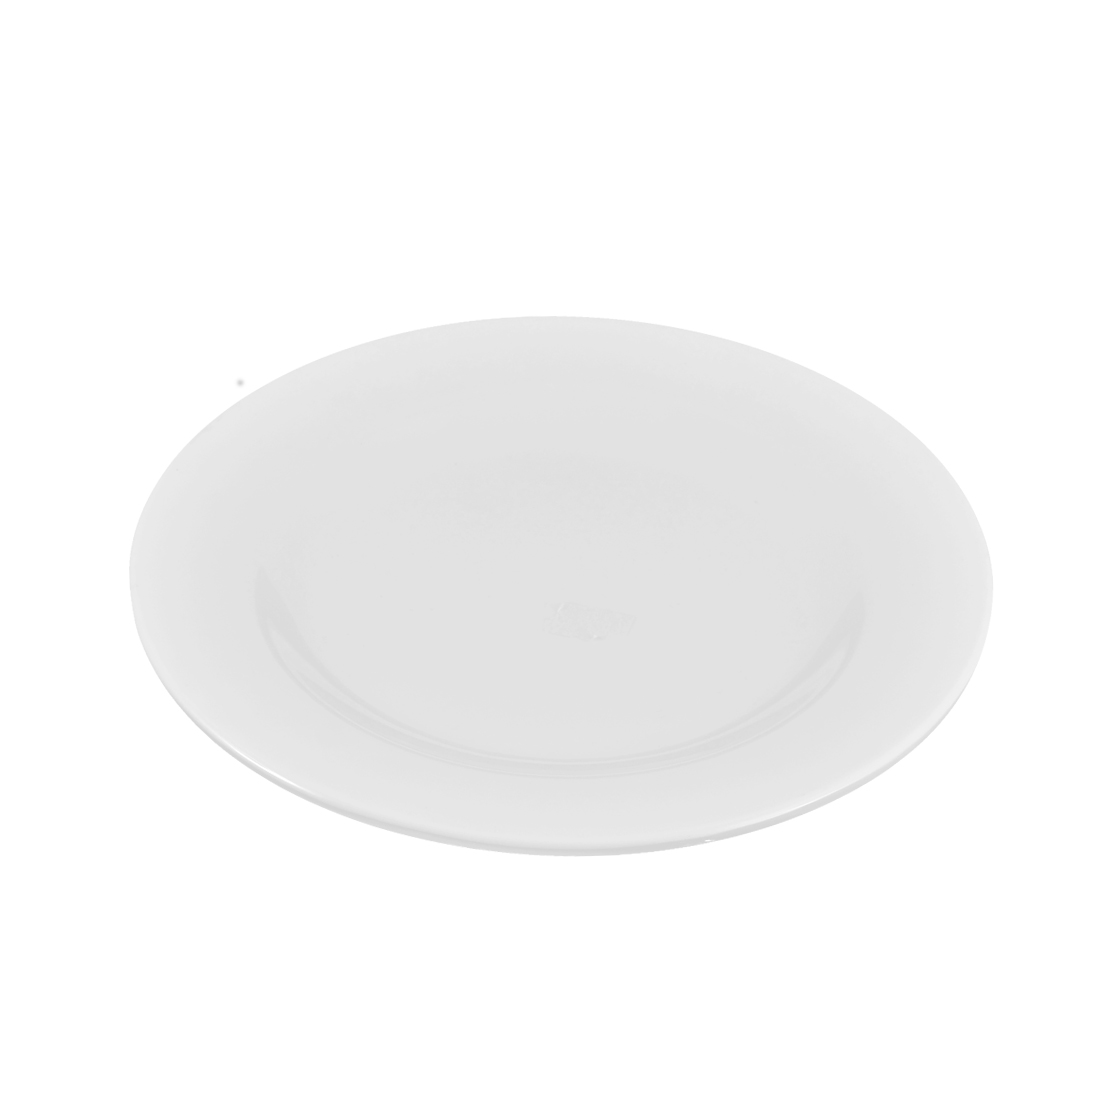 Restaurant Plastic Round Shaped Dish Plate Tray Container White 20cm Dia